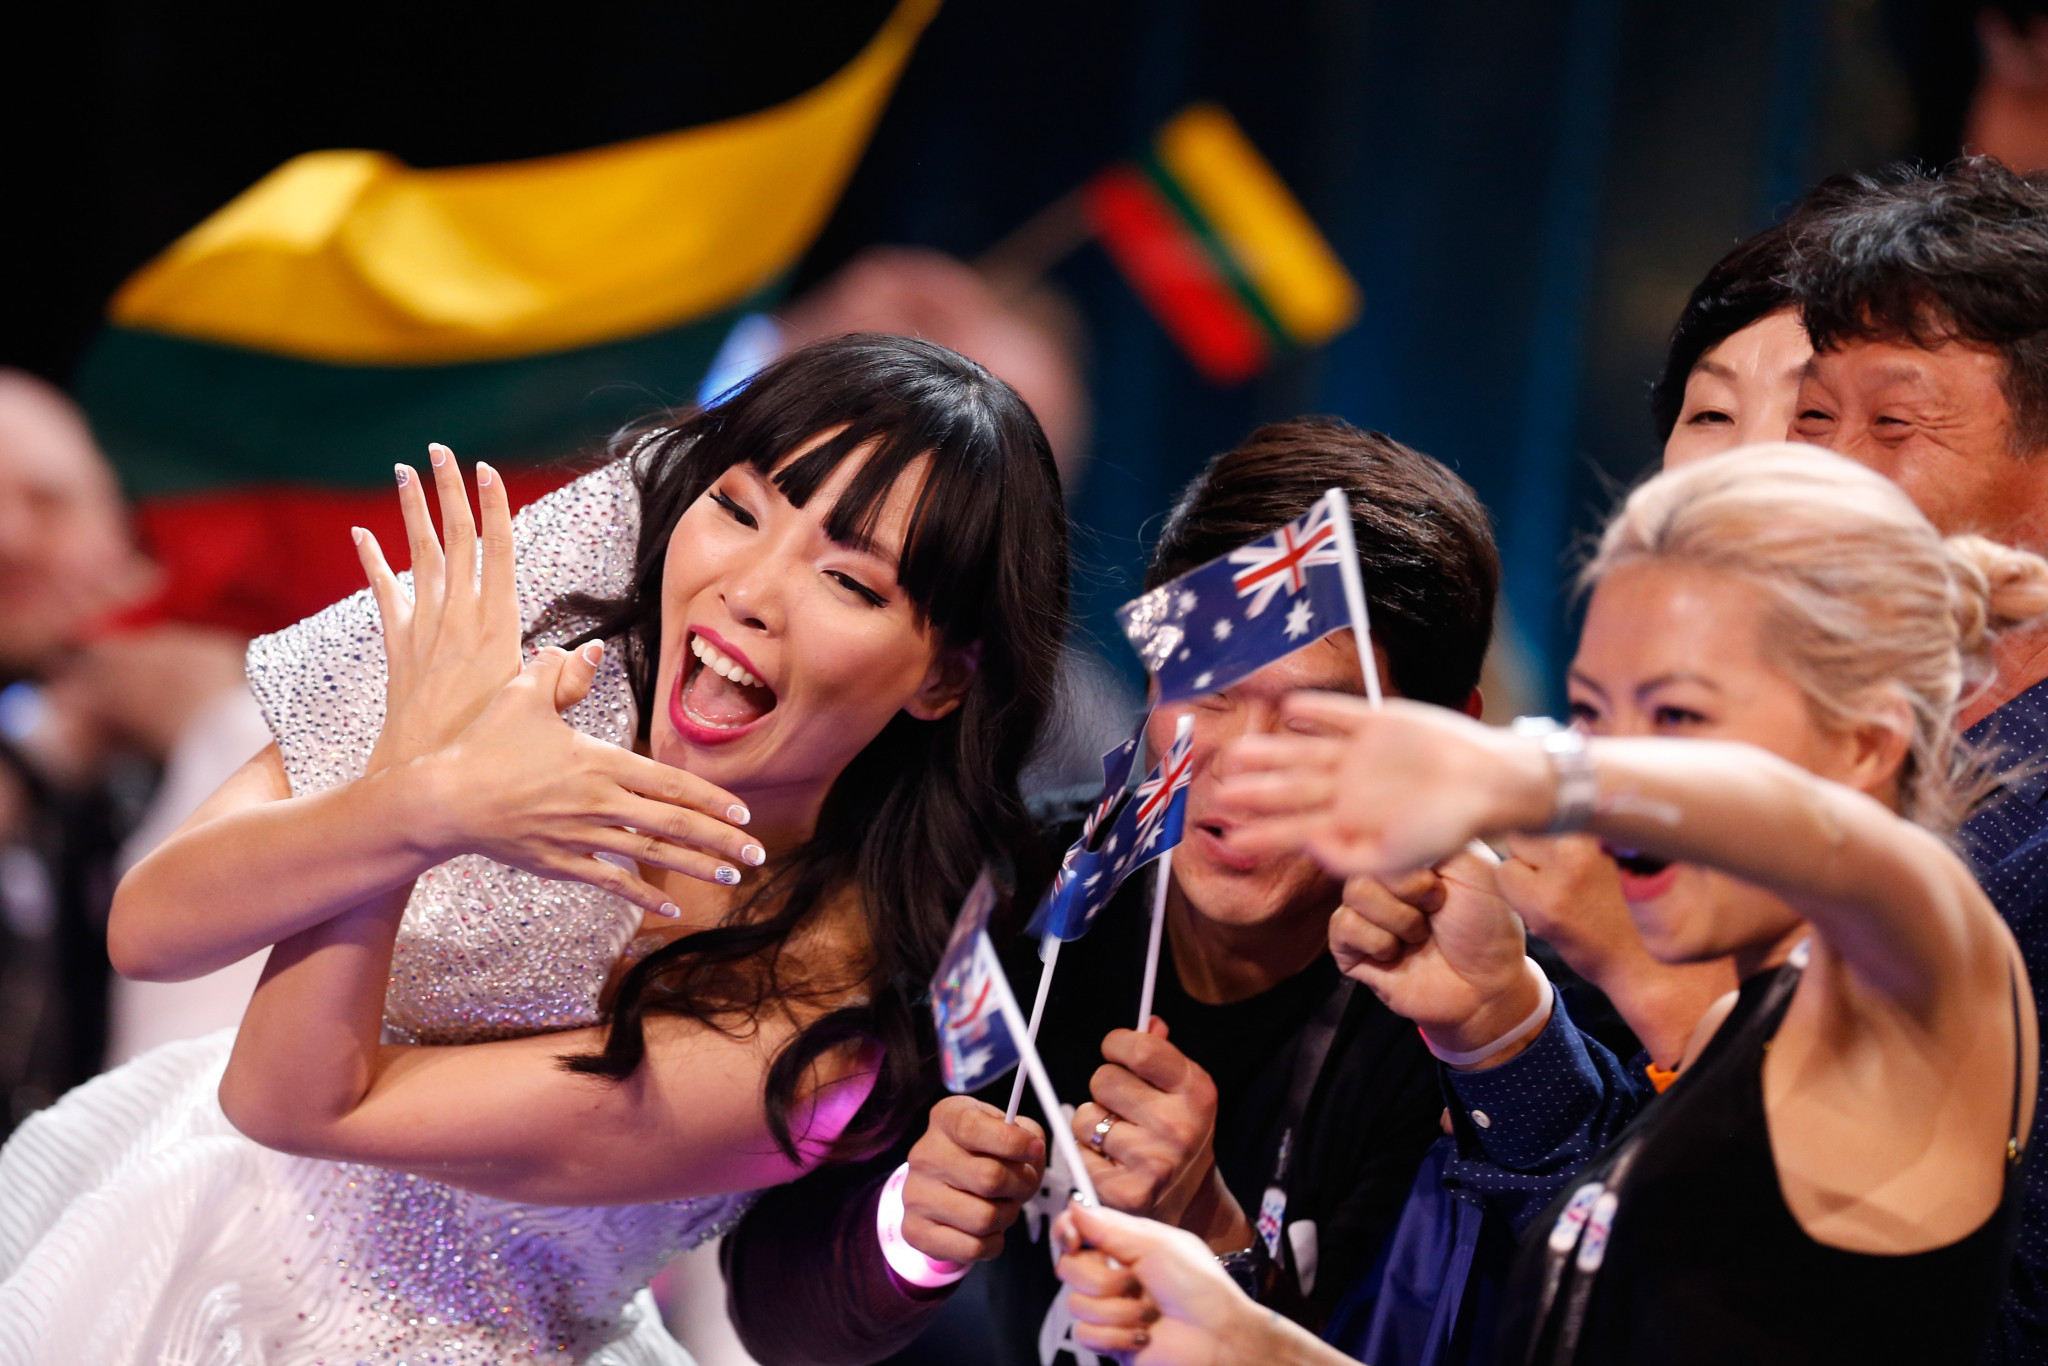 Dami Im will headline the Gold Coast 2018 charity gala ©Getty Images